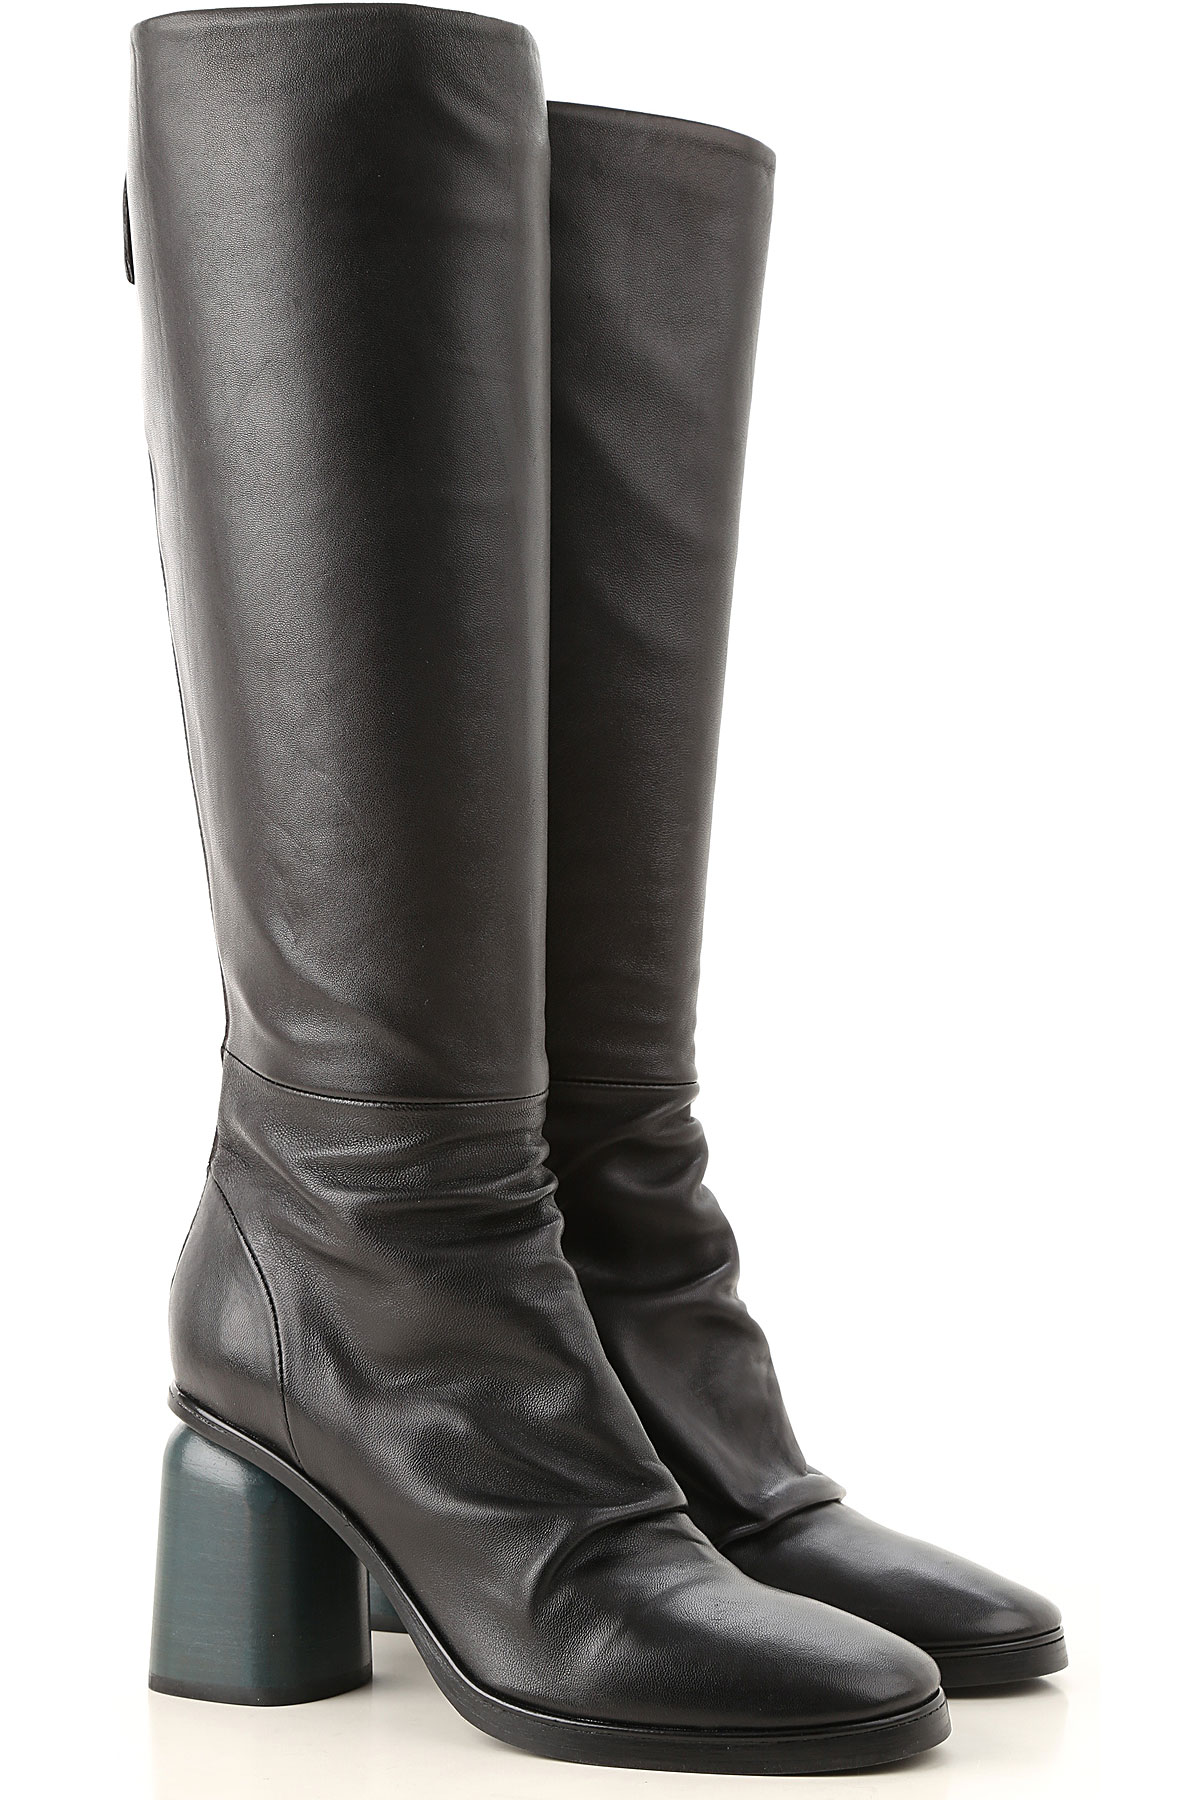 Image of Halmanera Boots for Women, Booties, Black, Leather, 2017, 6 7 8 9